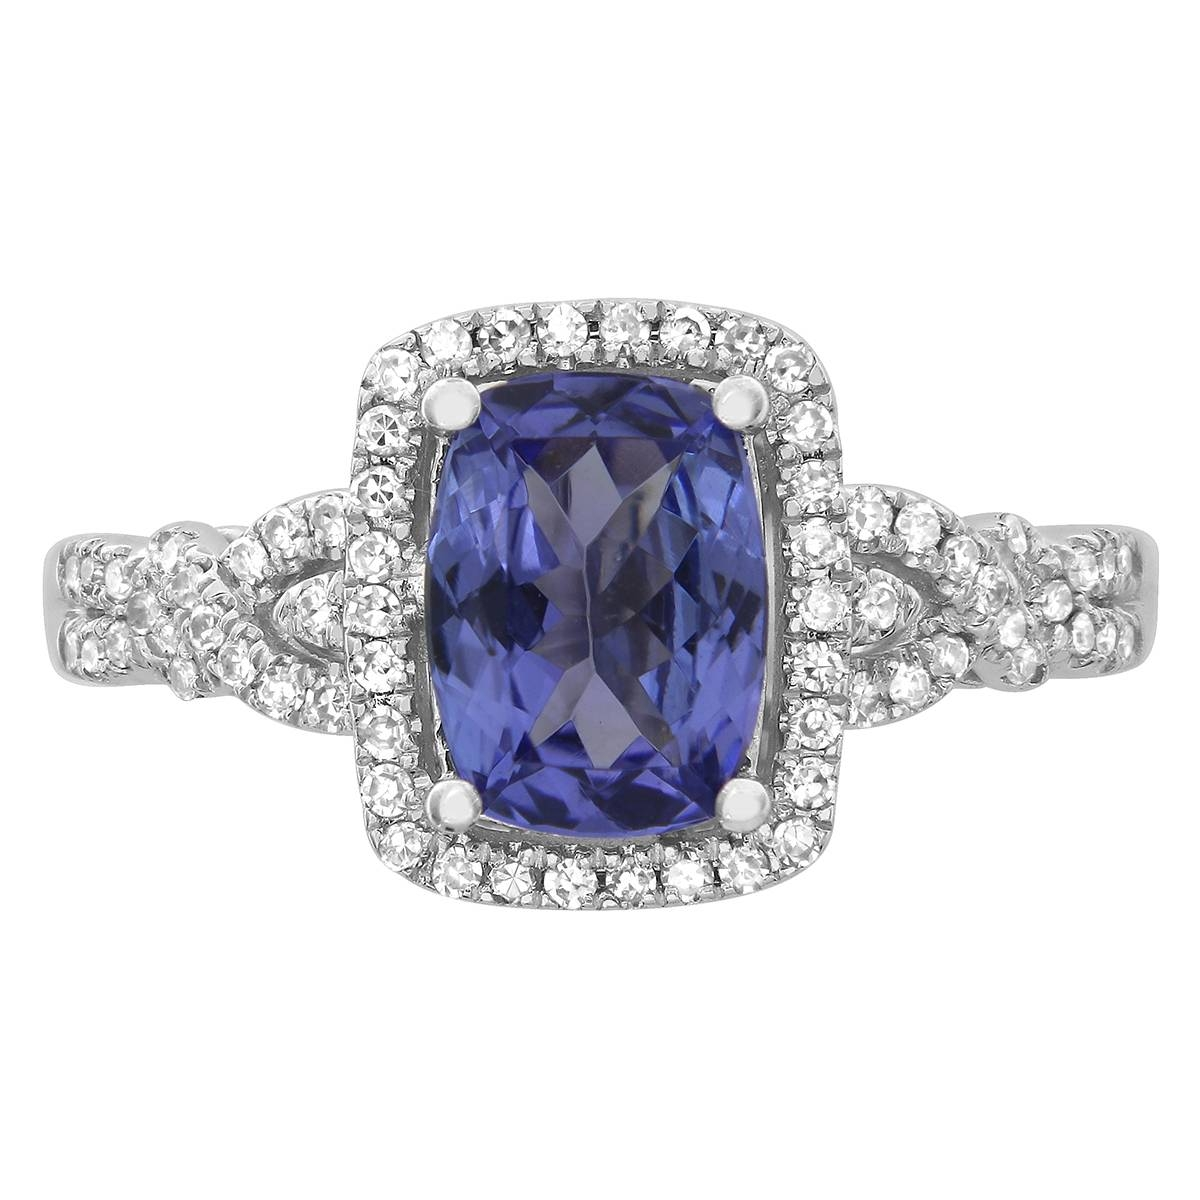 10K White Gold Cushion Cut Tanzanite And Diamond Engagement Ring With Tanzanite Engagement Rings With White Gold (View 2 of 15)